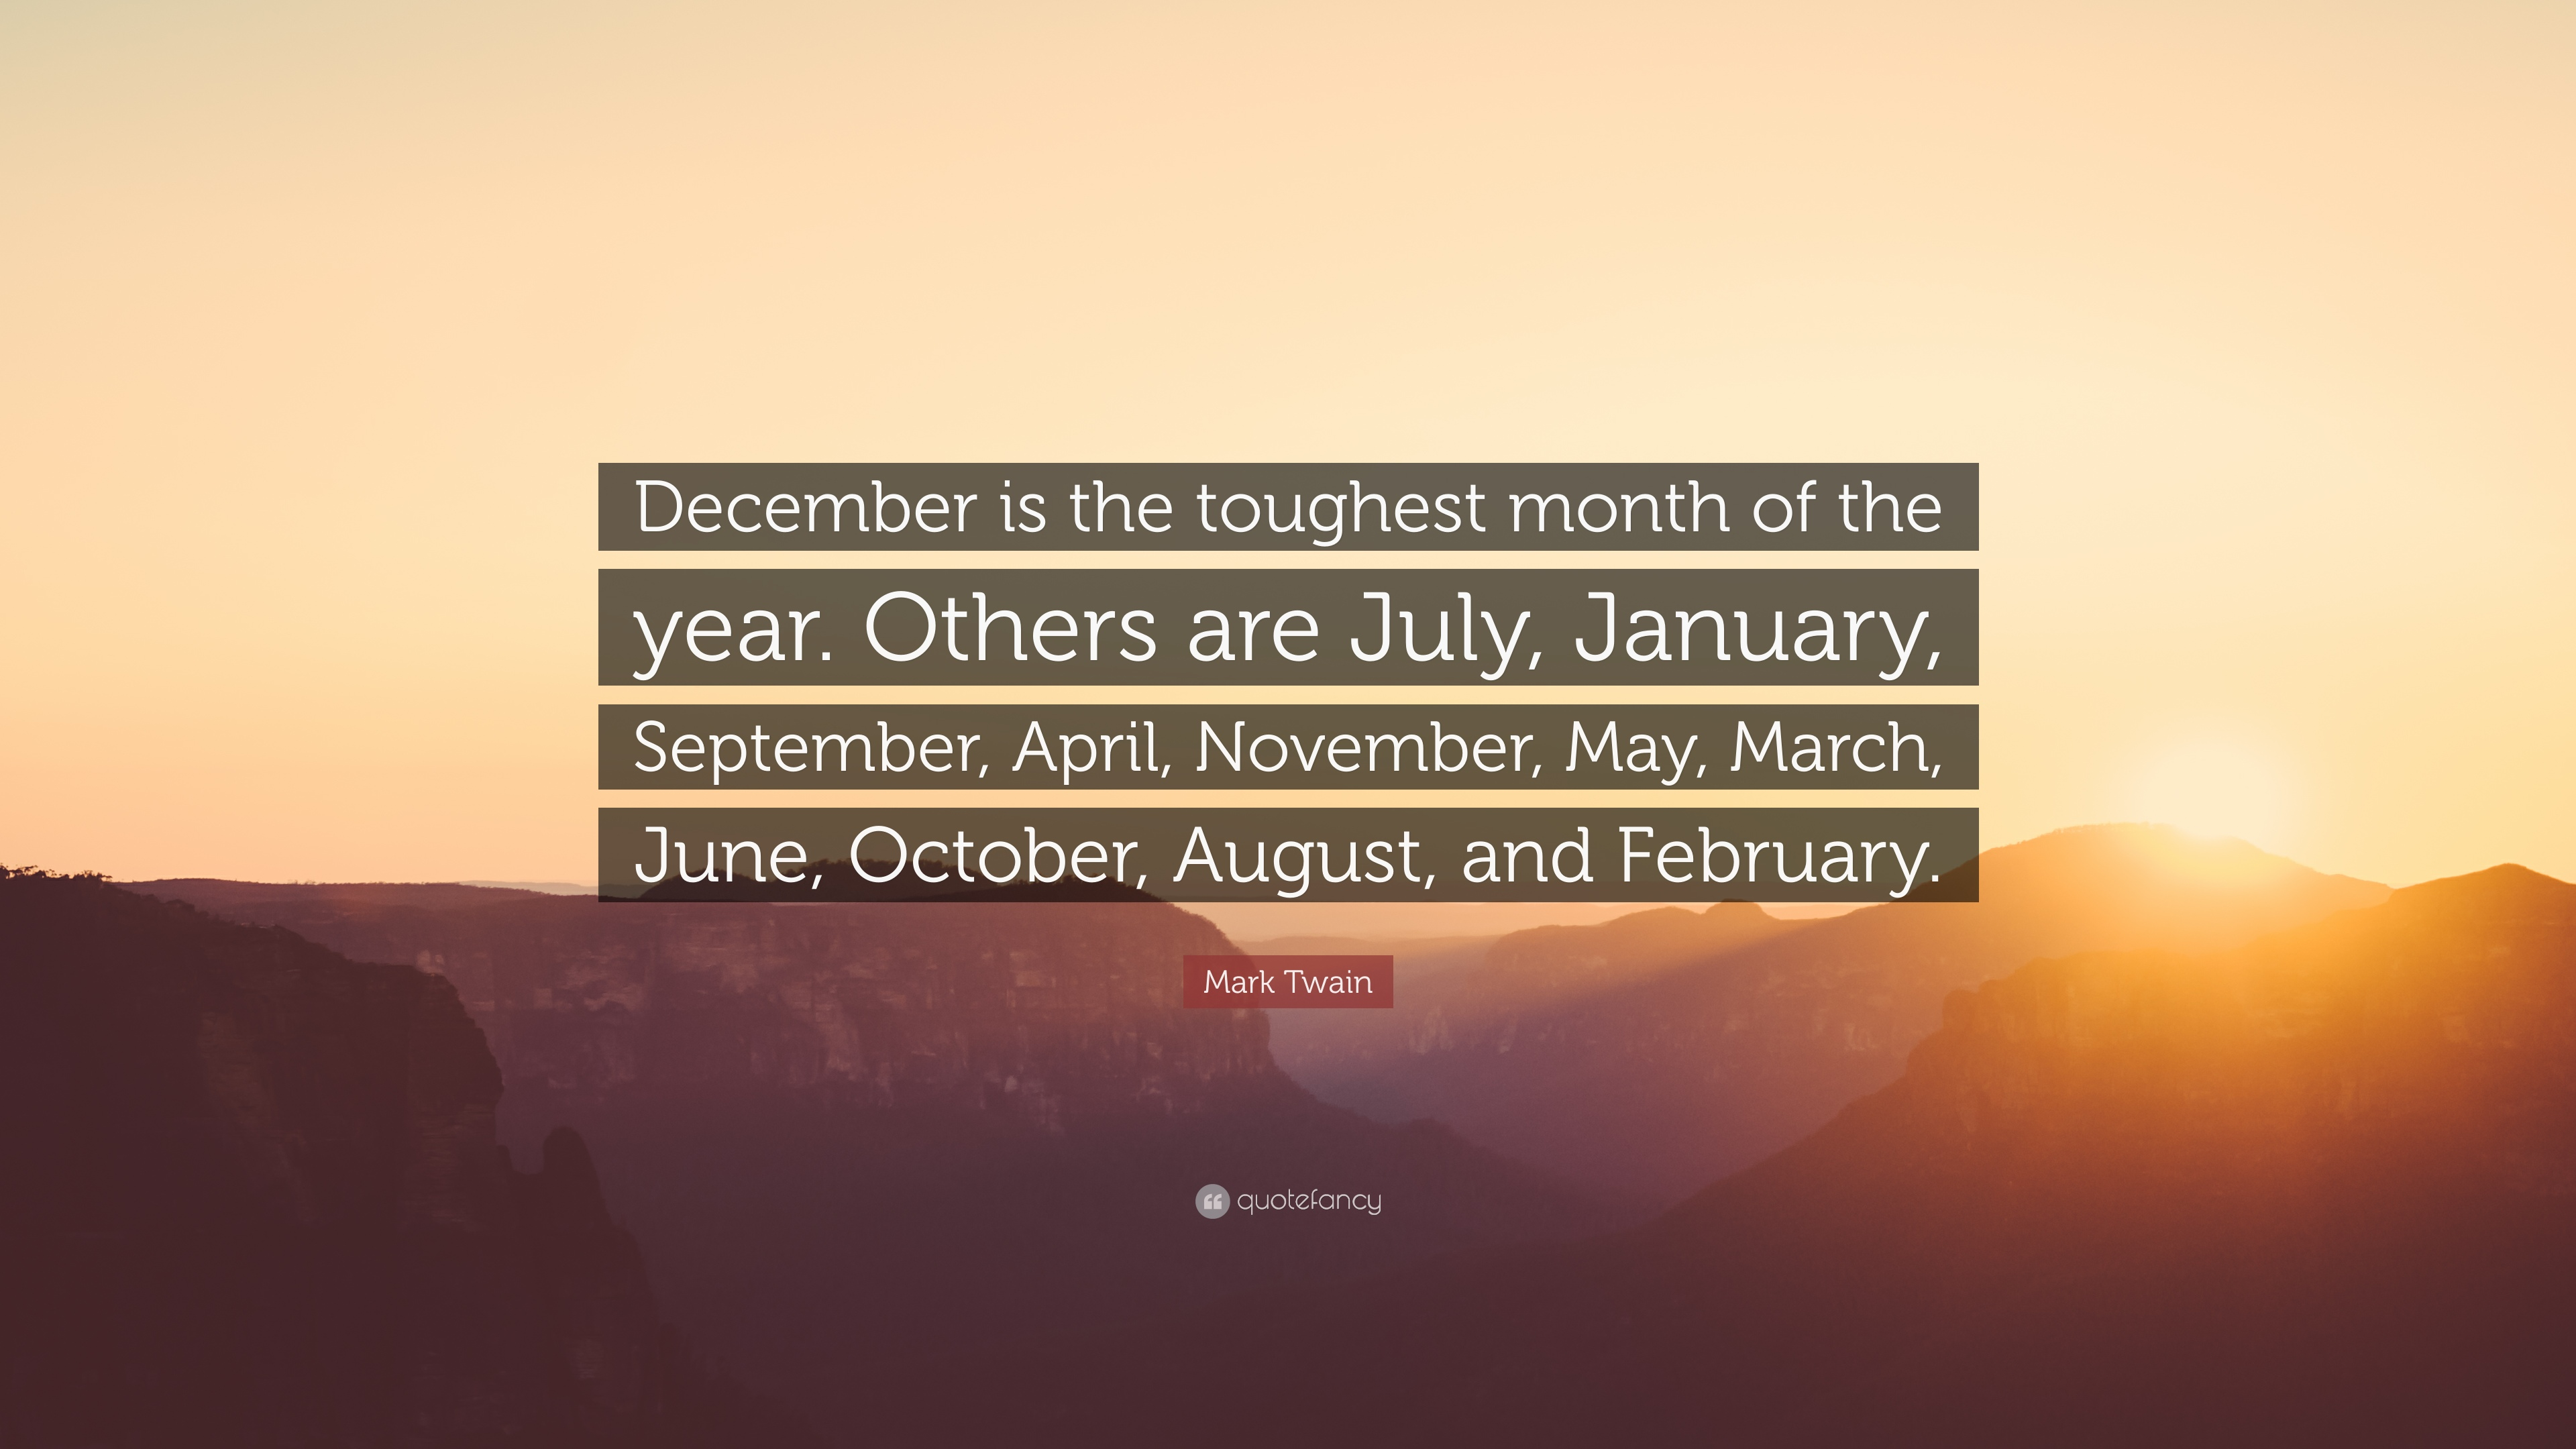 Mark Twain Quote: U201cDecember Is The Toughest Month Of The Year. Others Are